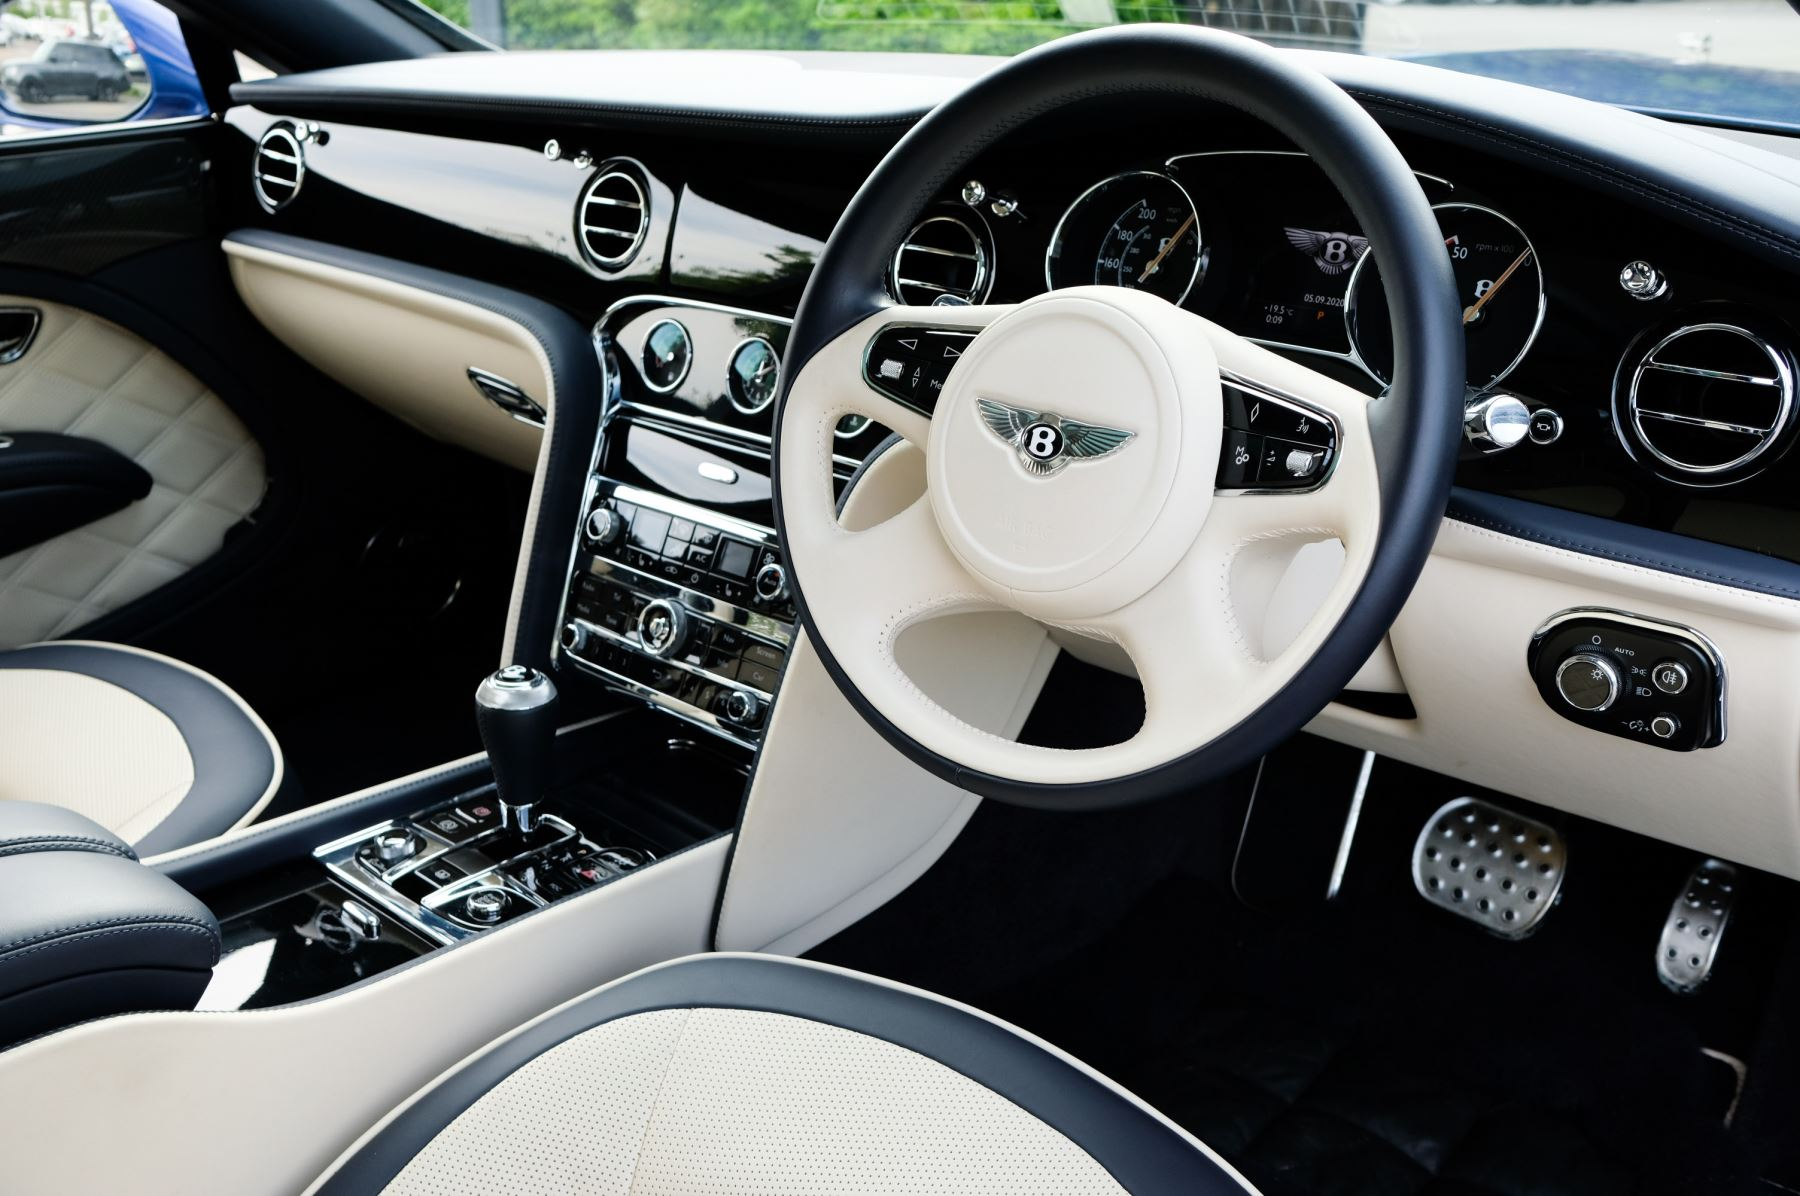 Bentley Mulsanne Speed 6.8 V8 Speed - Speed Premier and Entertainment Specification image 12